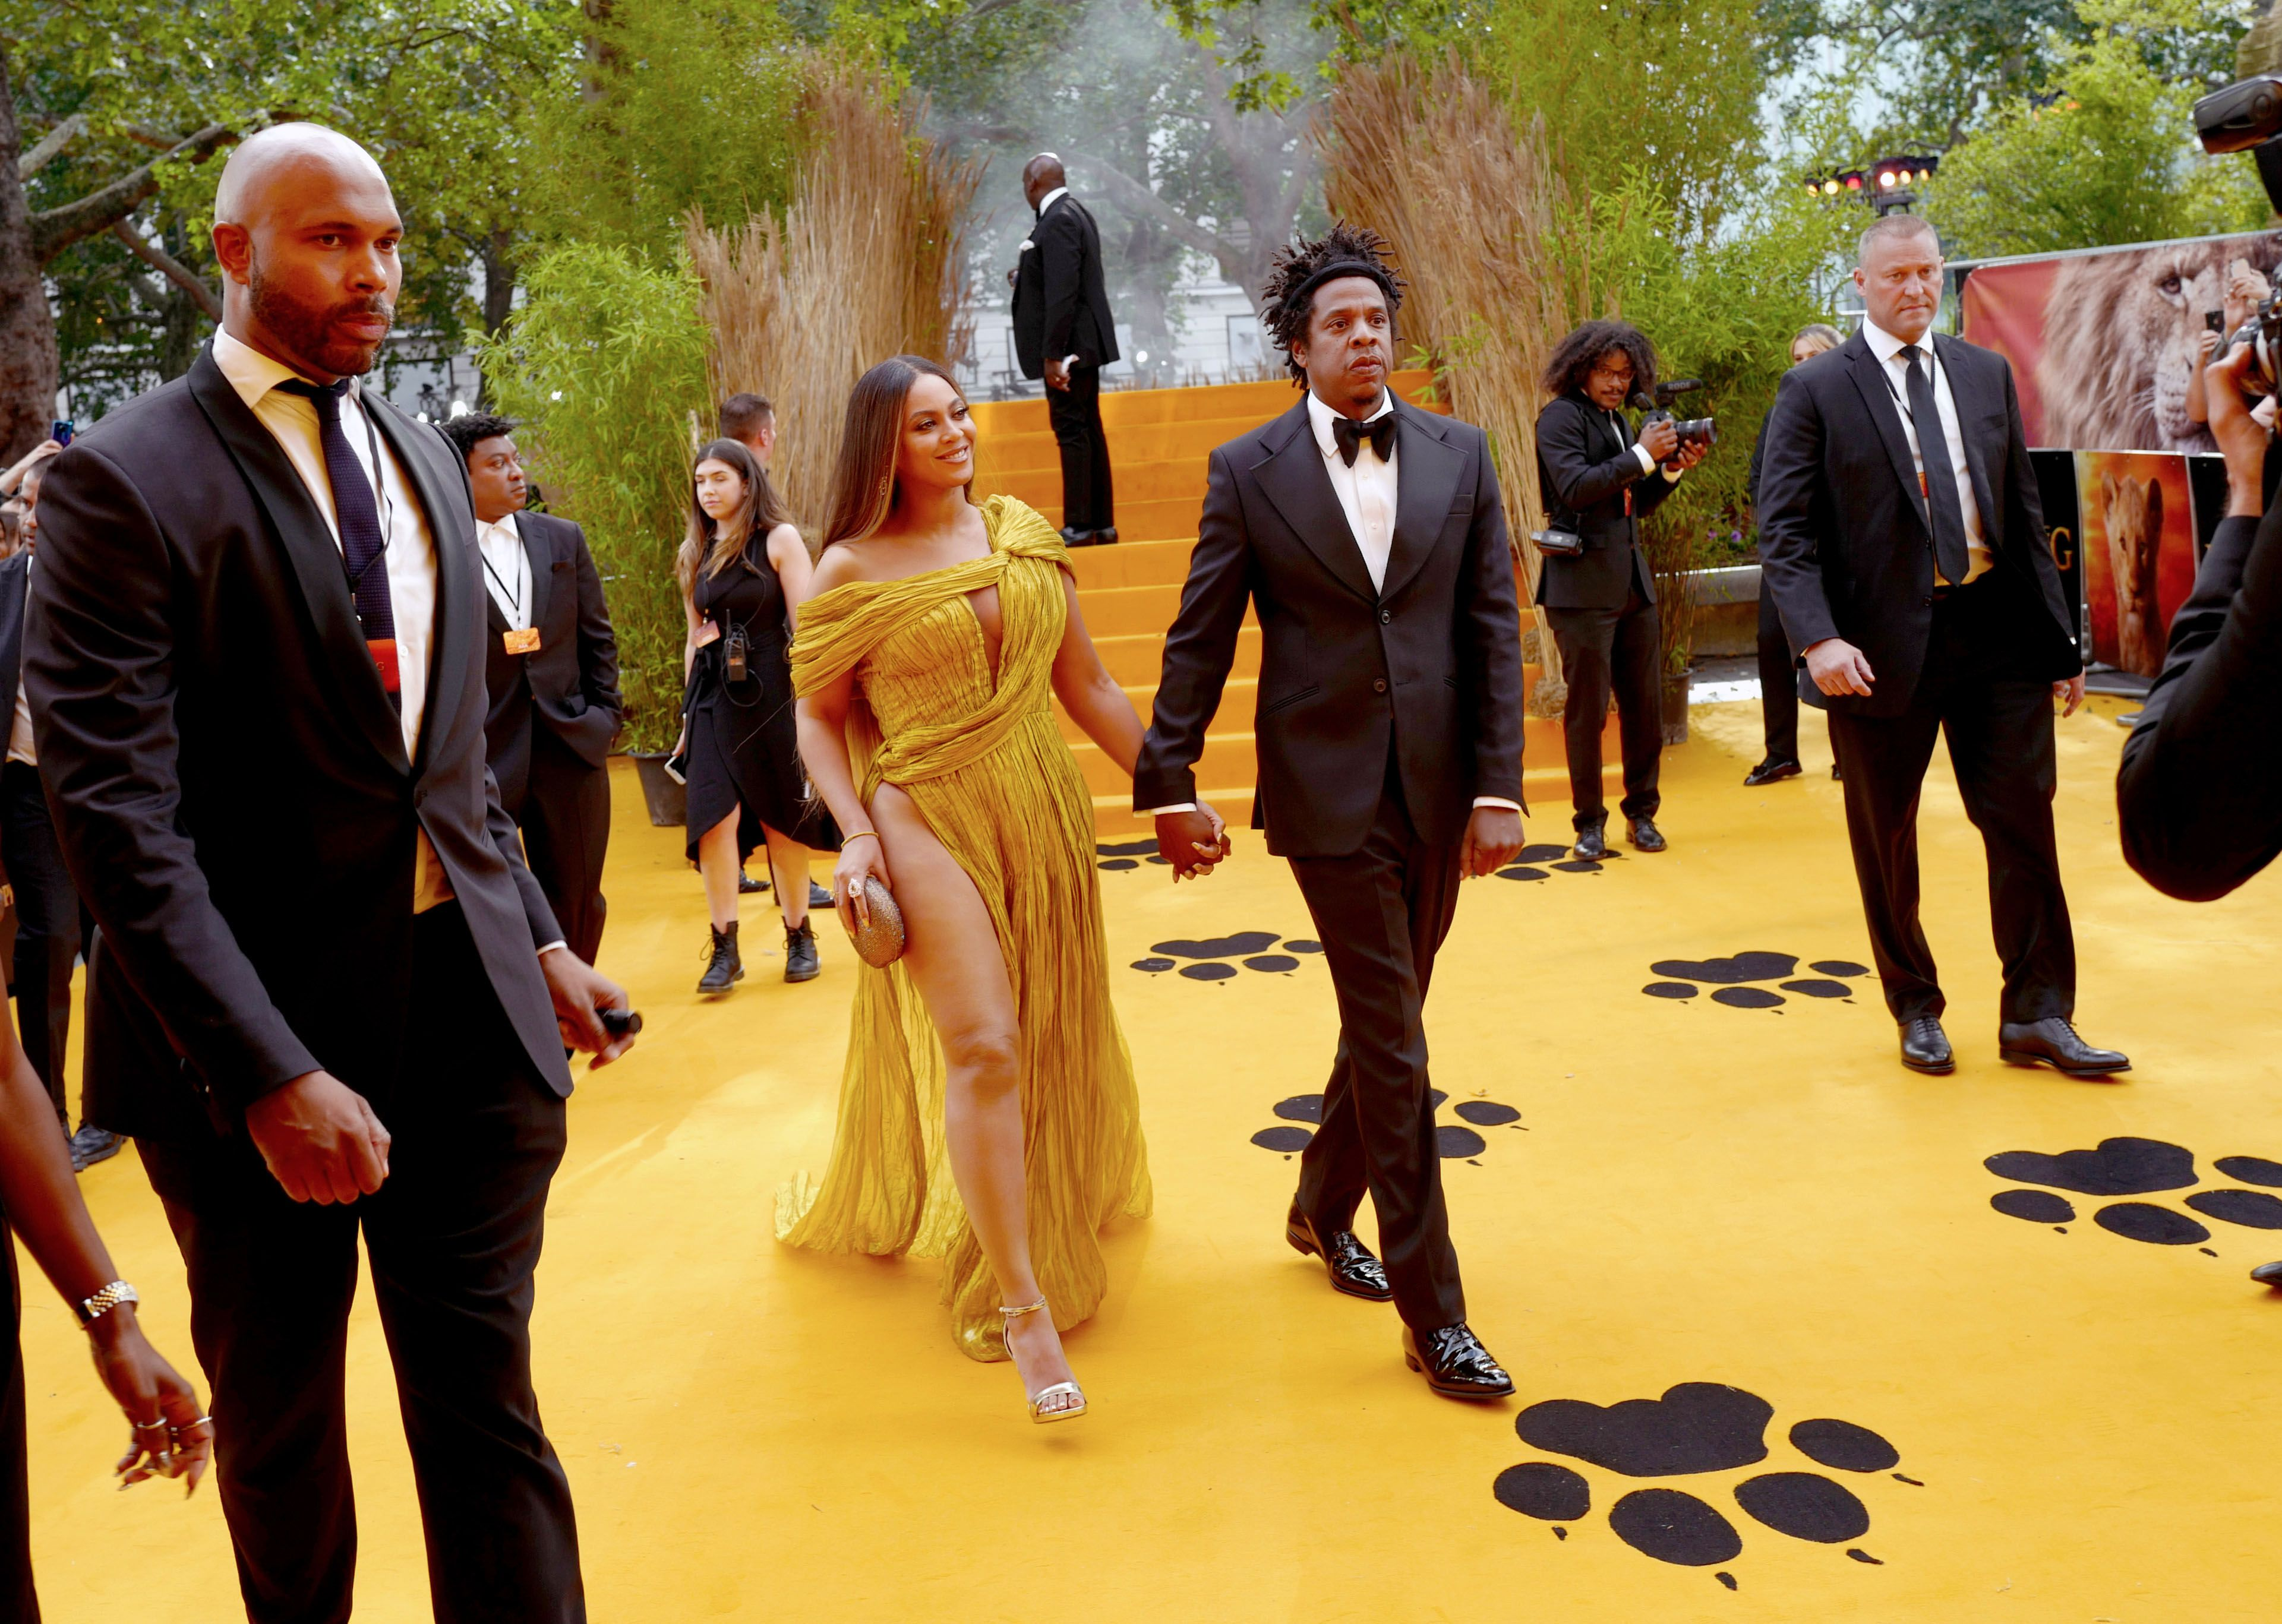 Beyoncé Wears a Gorgeous Yellow Dress with a Jaw-Dropping Leg Slit to 'The Lion King' Premiere in London